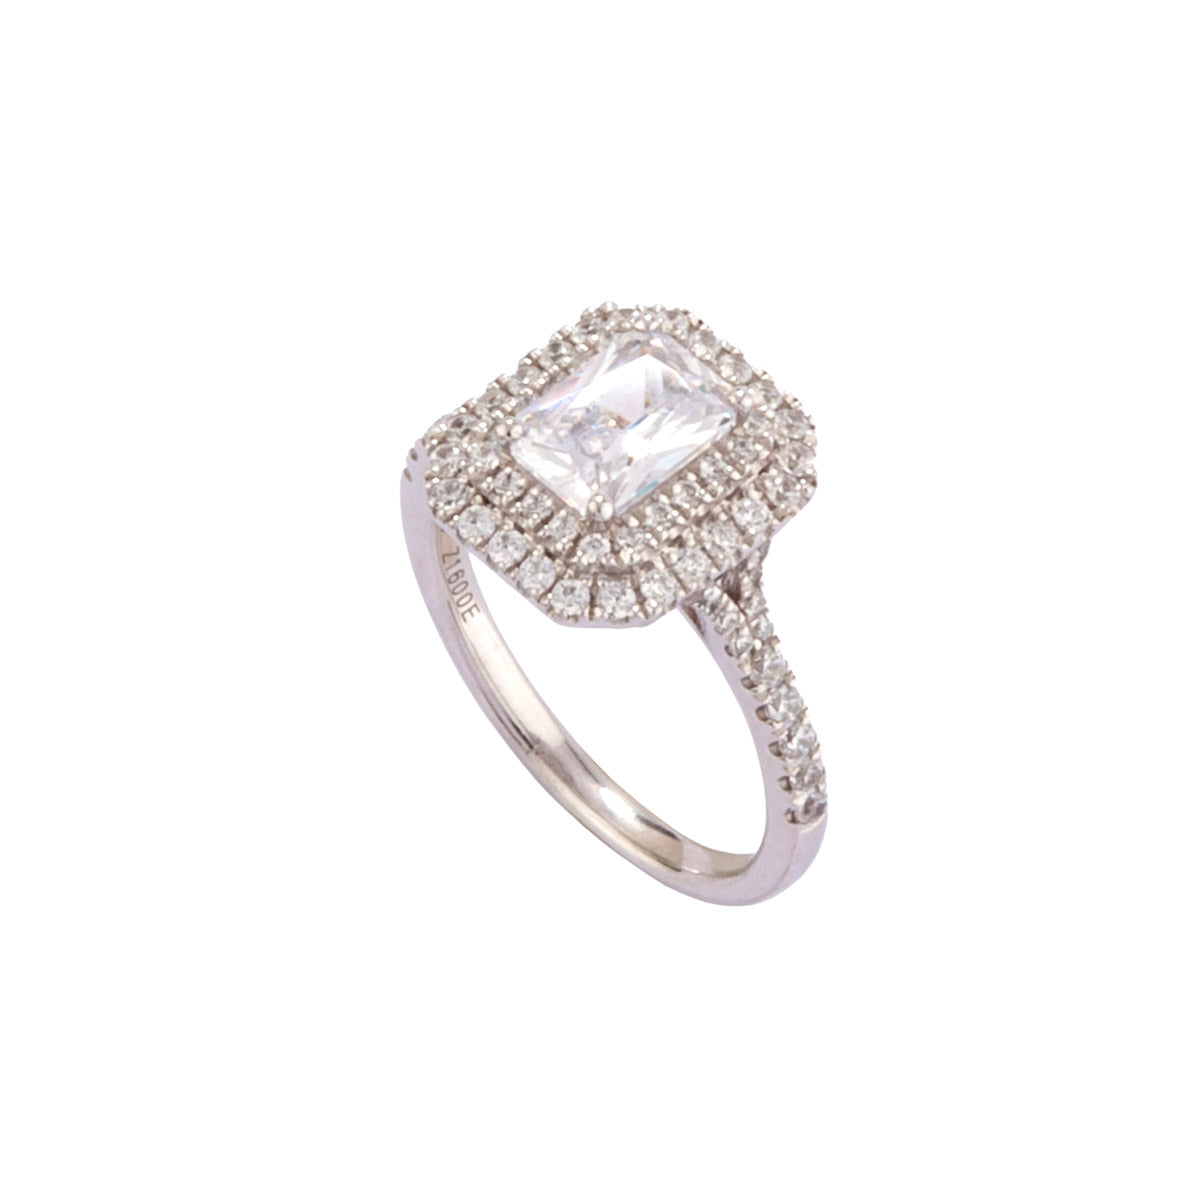 Rectangular Radiant Cut Double Halo Diamond Ring